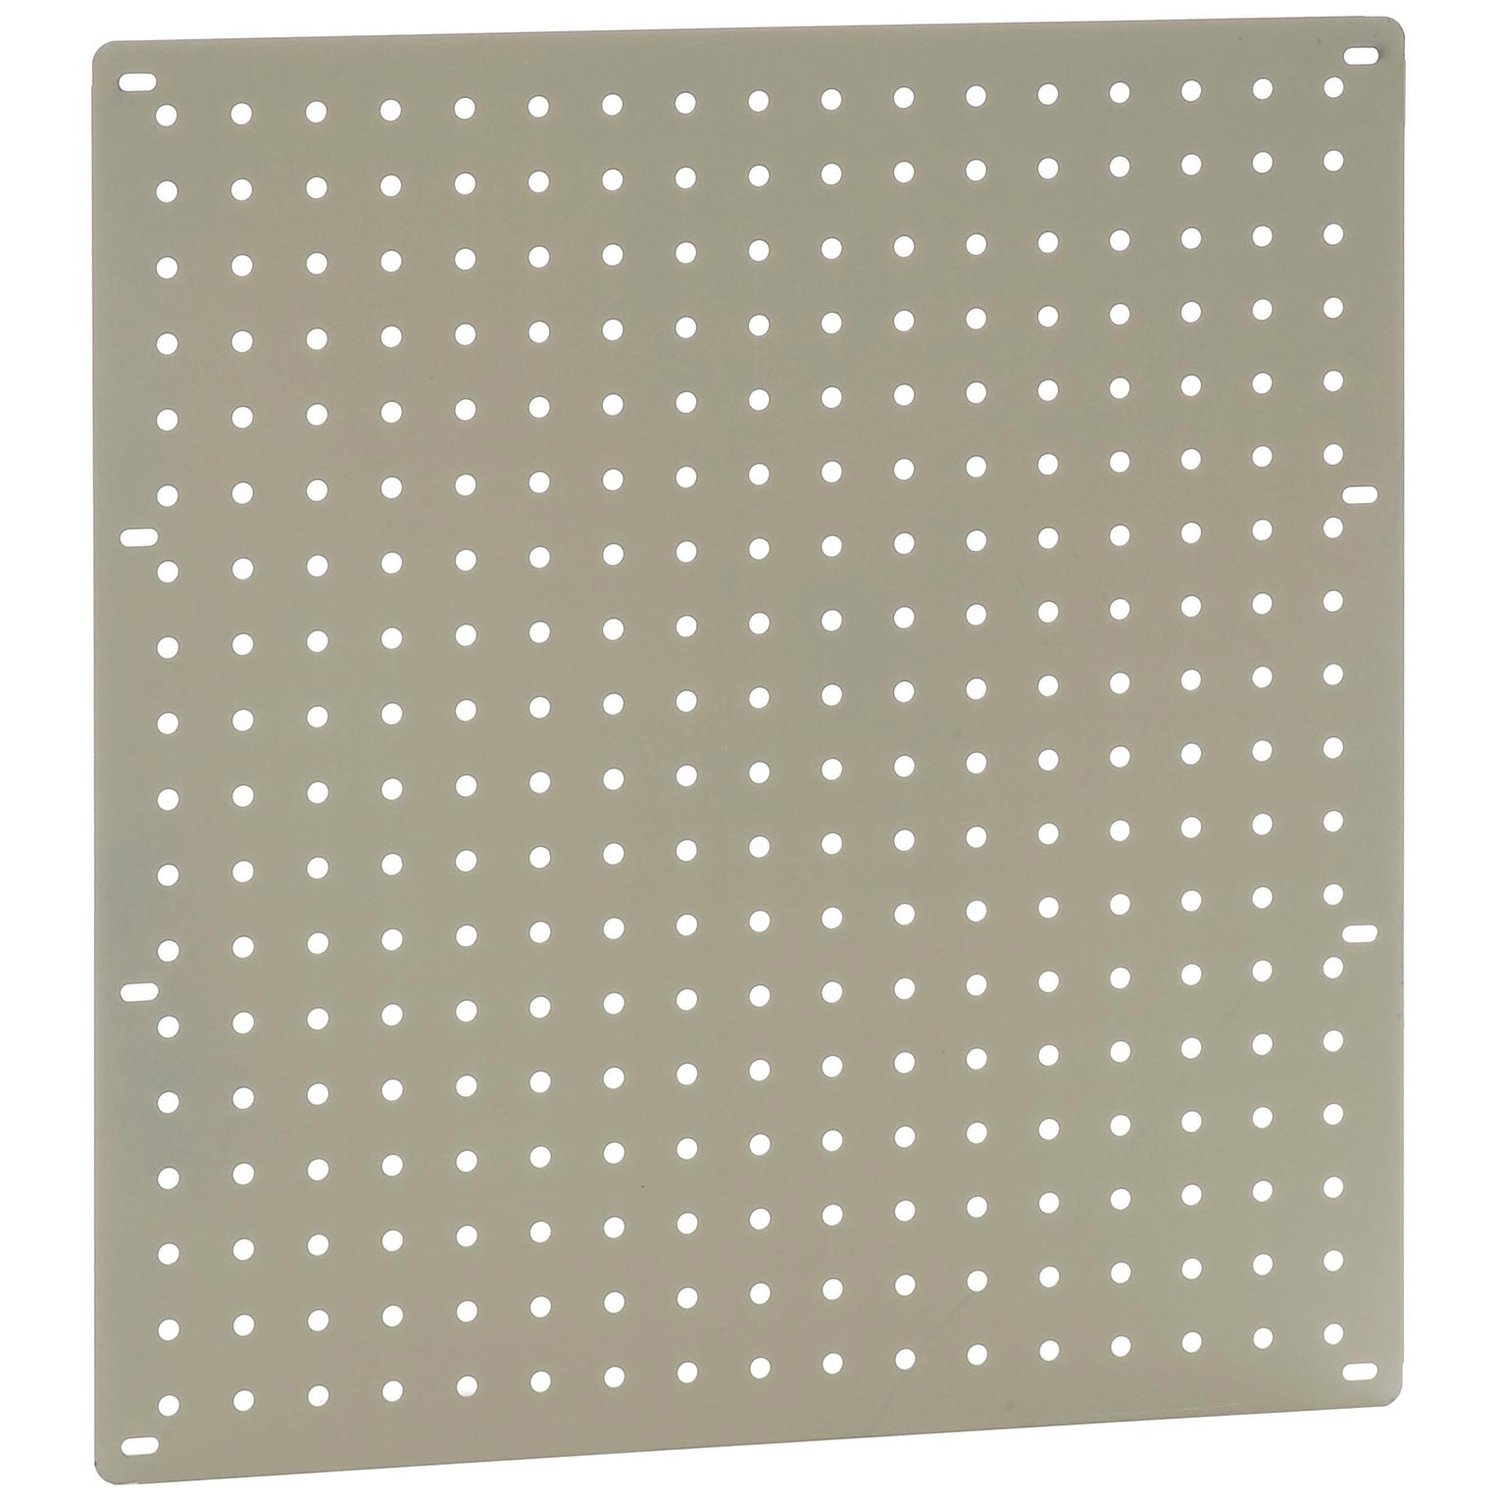 Heavy Duty Steel Pegboard, Tan, 18'' x 19'' by Global Industrial